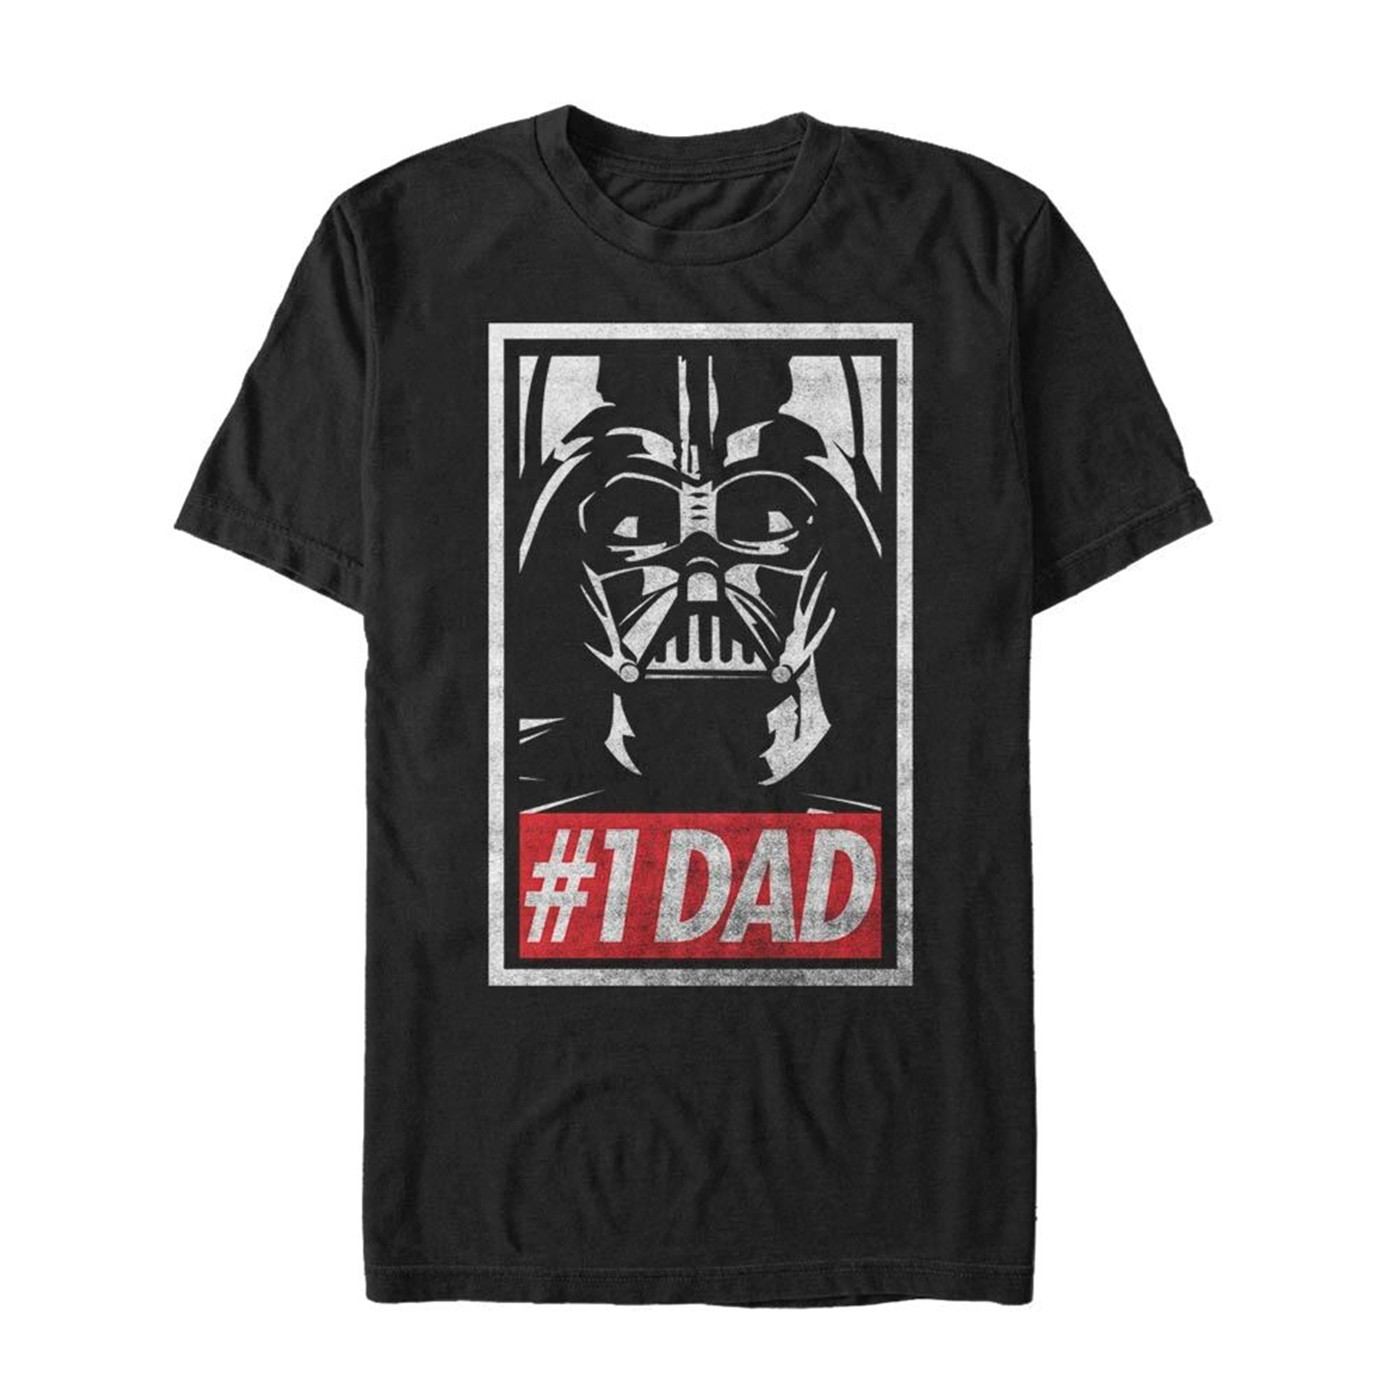 Darth Vader Number One Dad T-Shirt